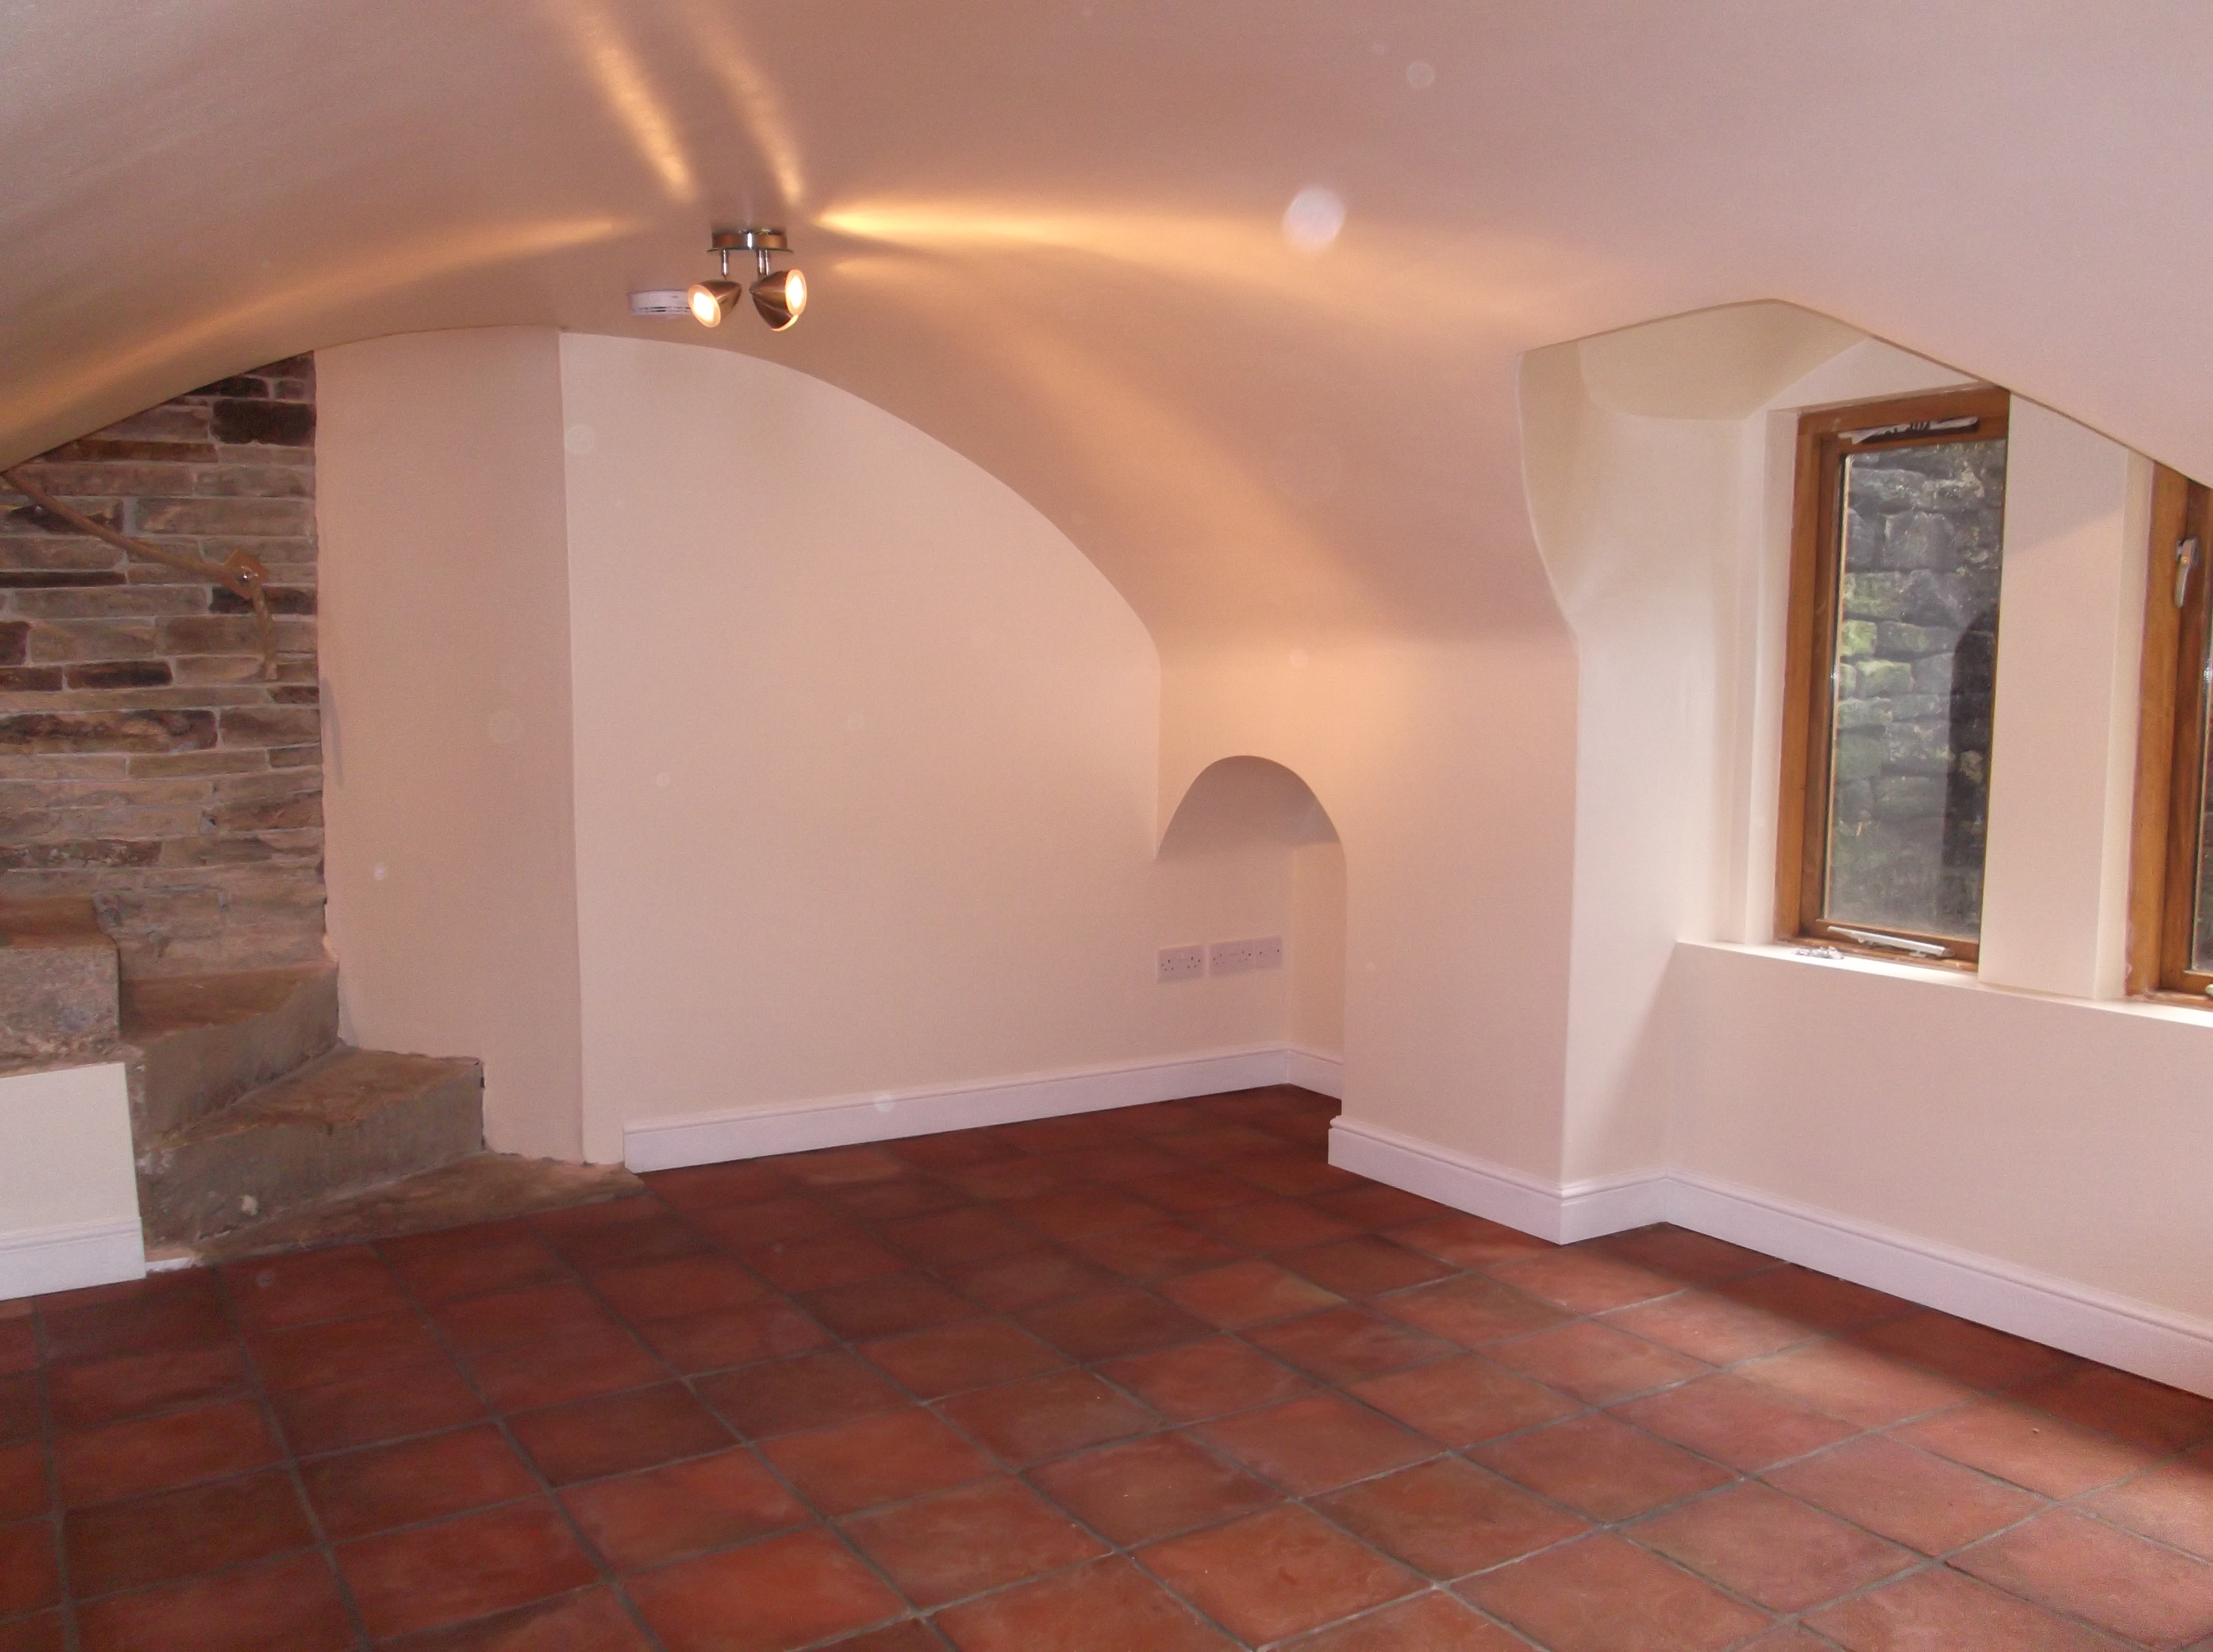 Vault Ceiling Cellar Conversion In Oldham By Stone Dry